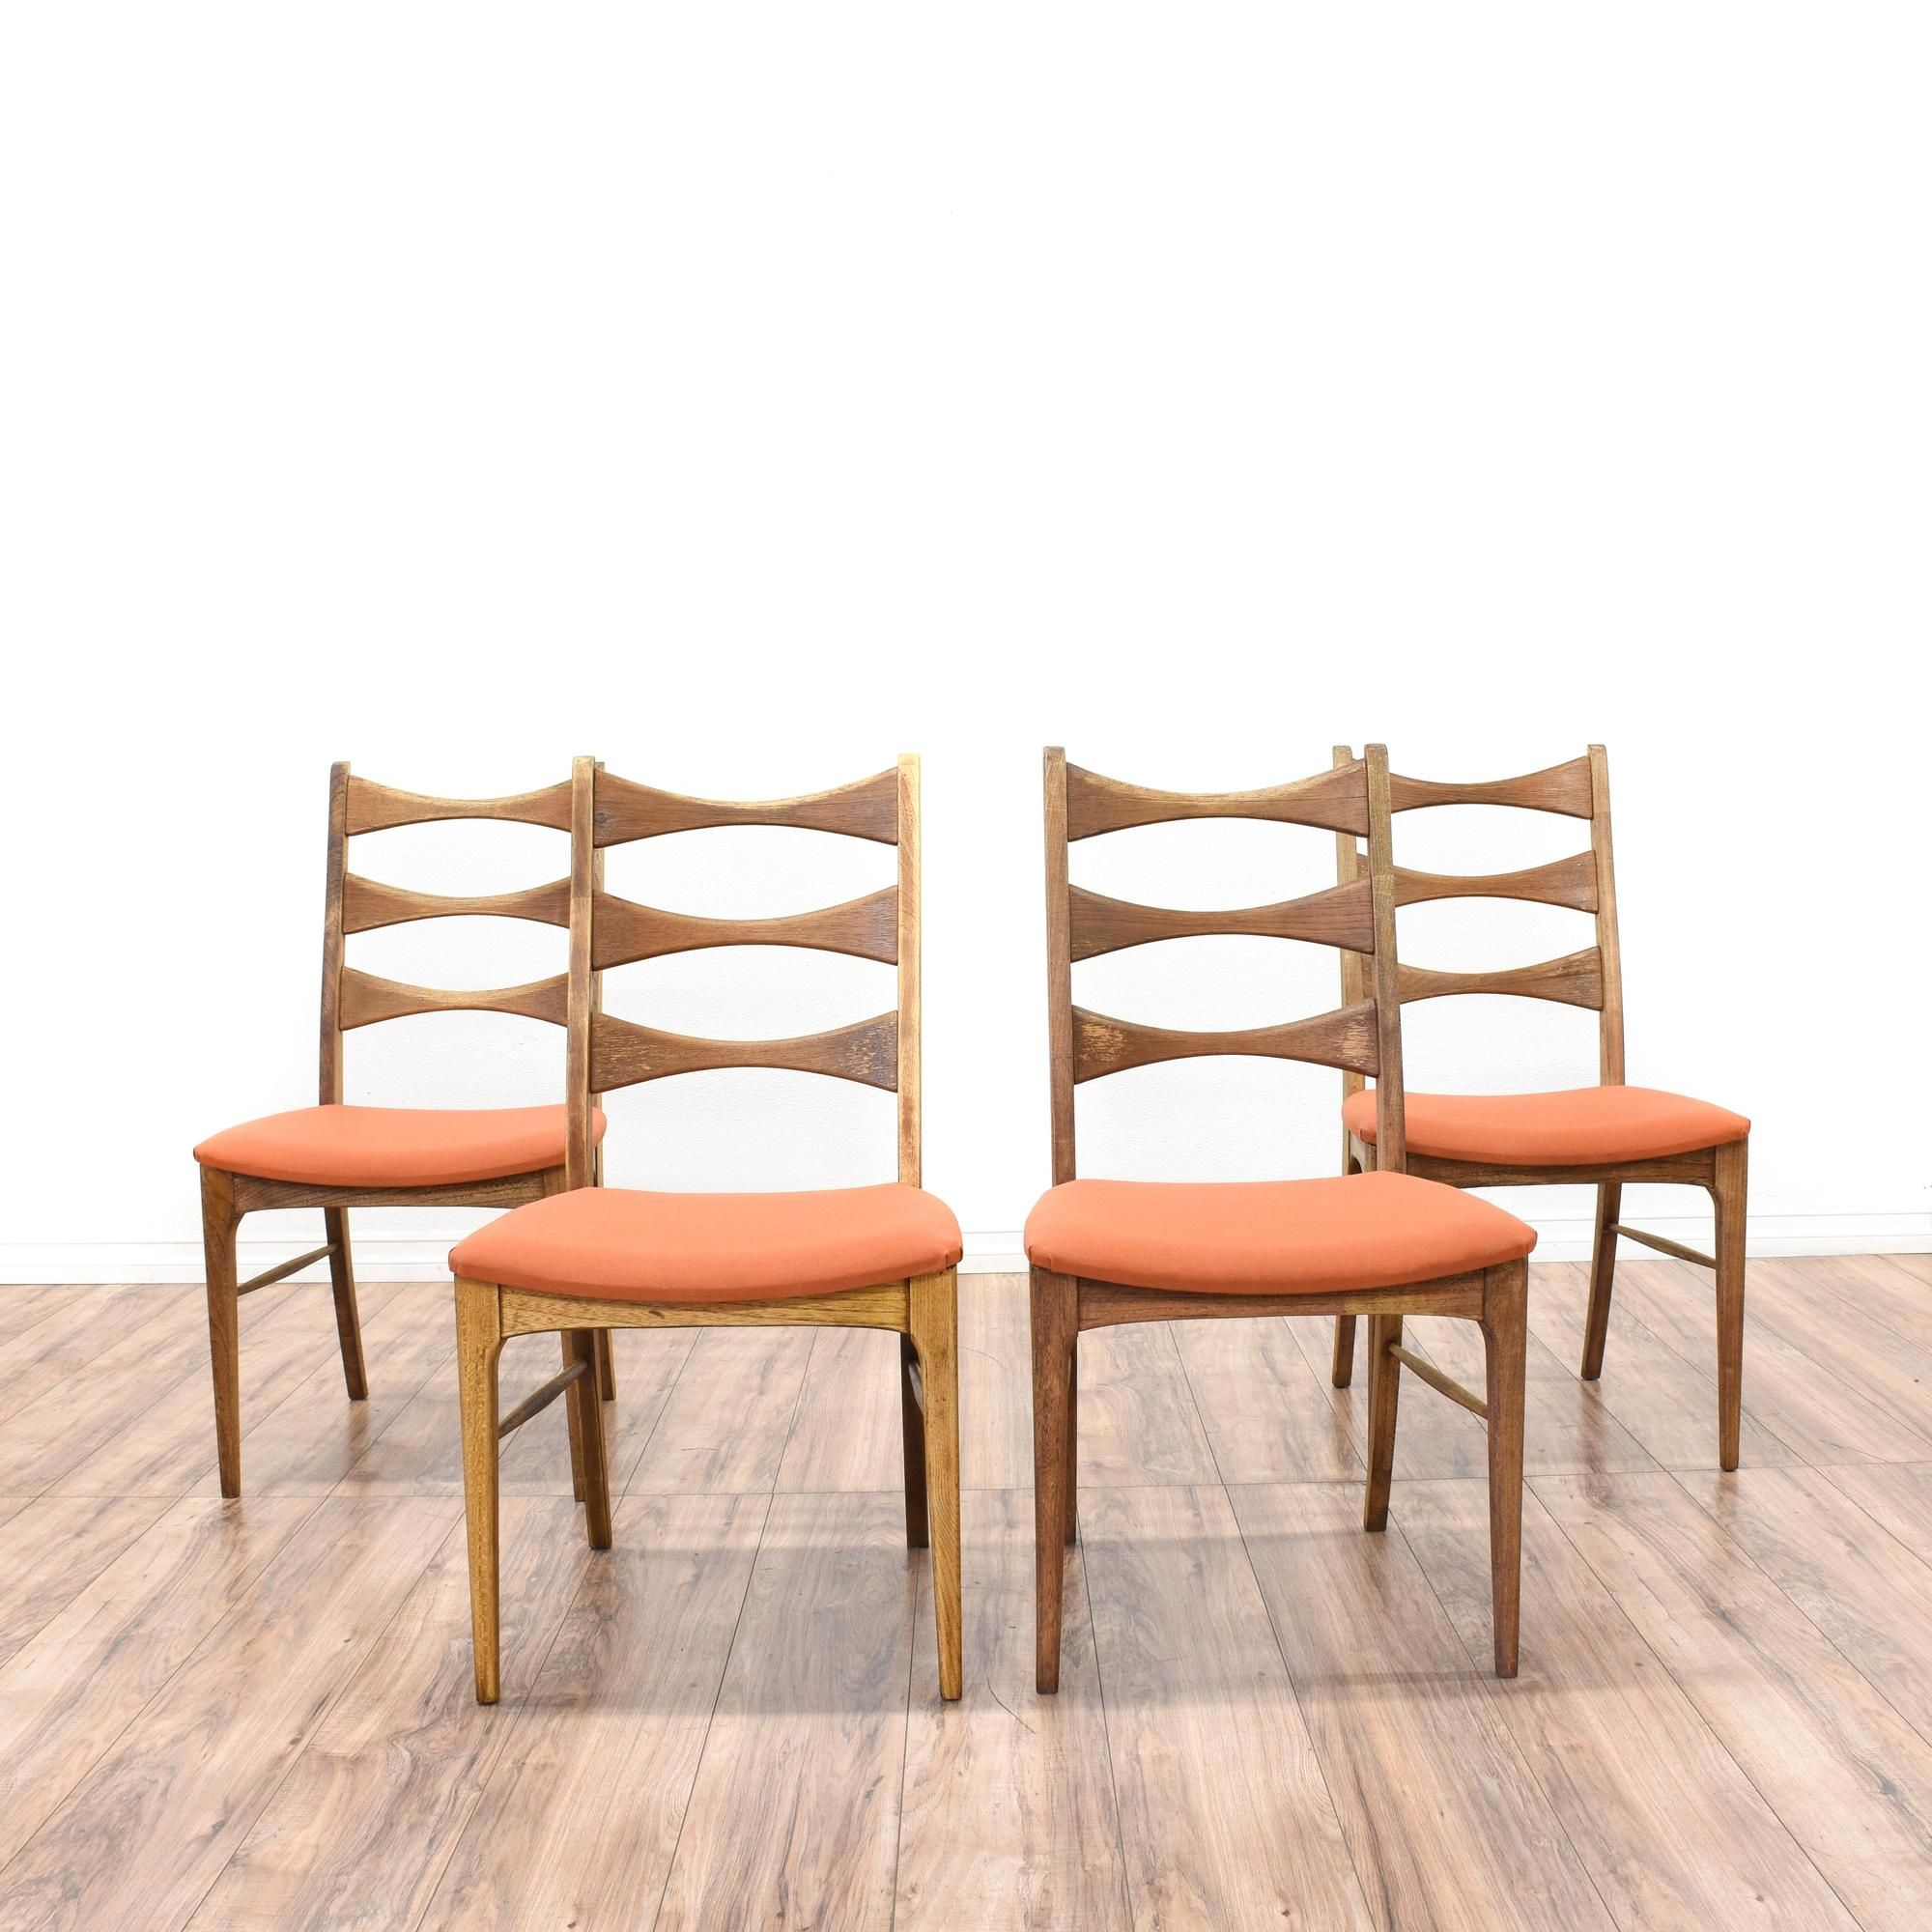 Used danish furniture uploaded by admin in modern furniture category - Set Of 4 Bow Tie Ladder Back Dining Chairs Mid Century Modern